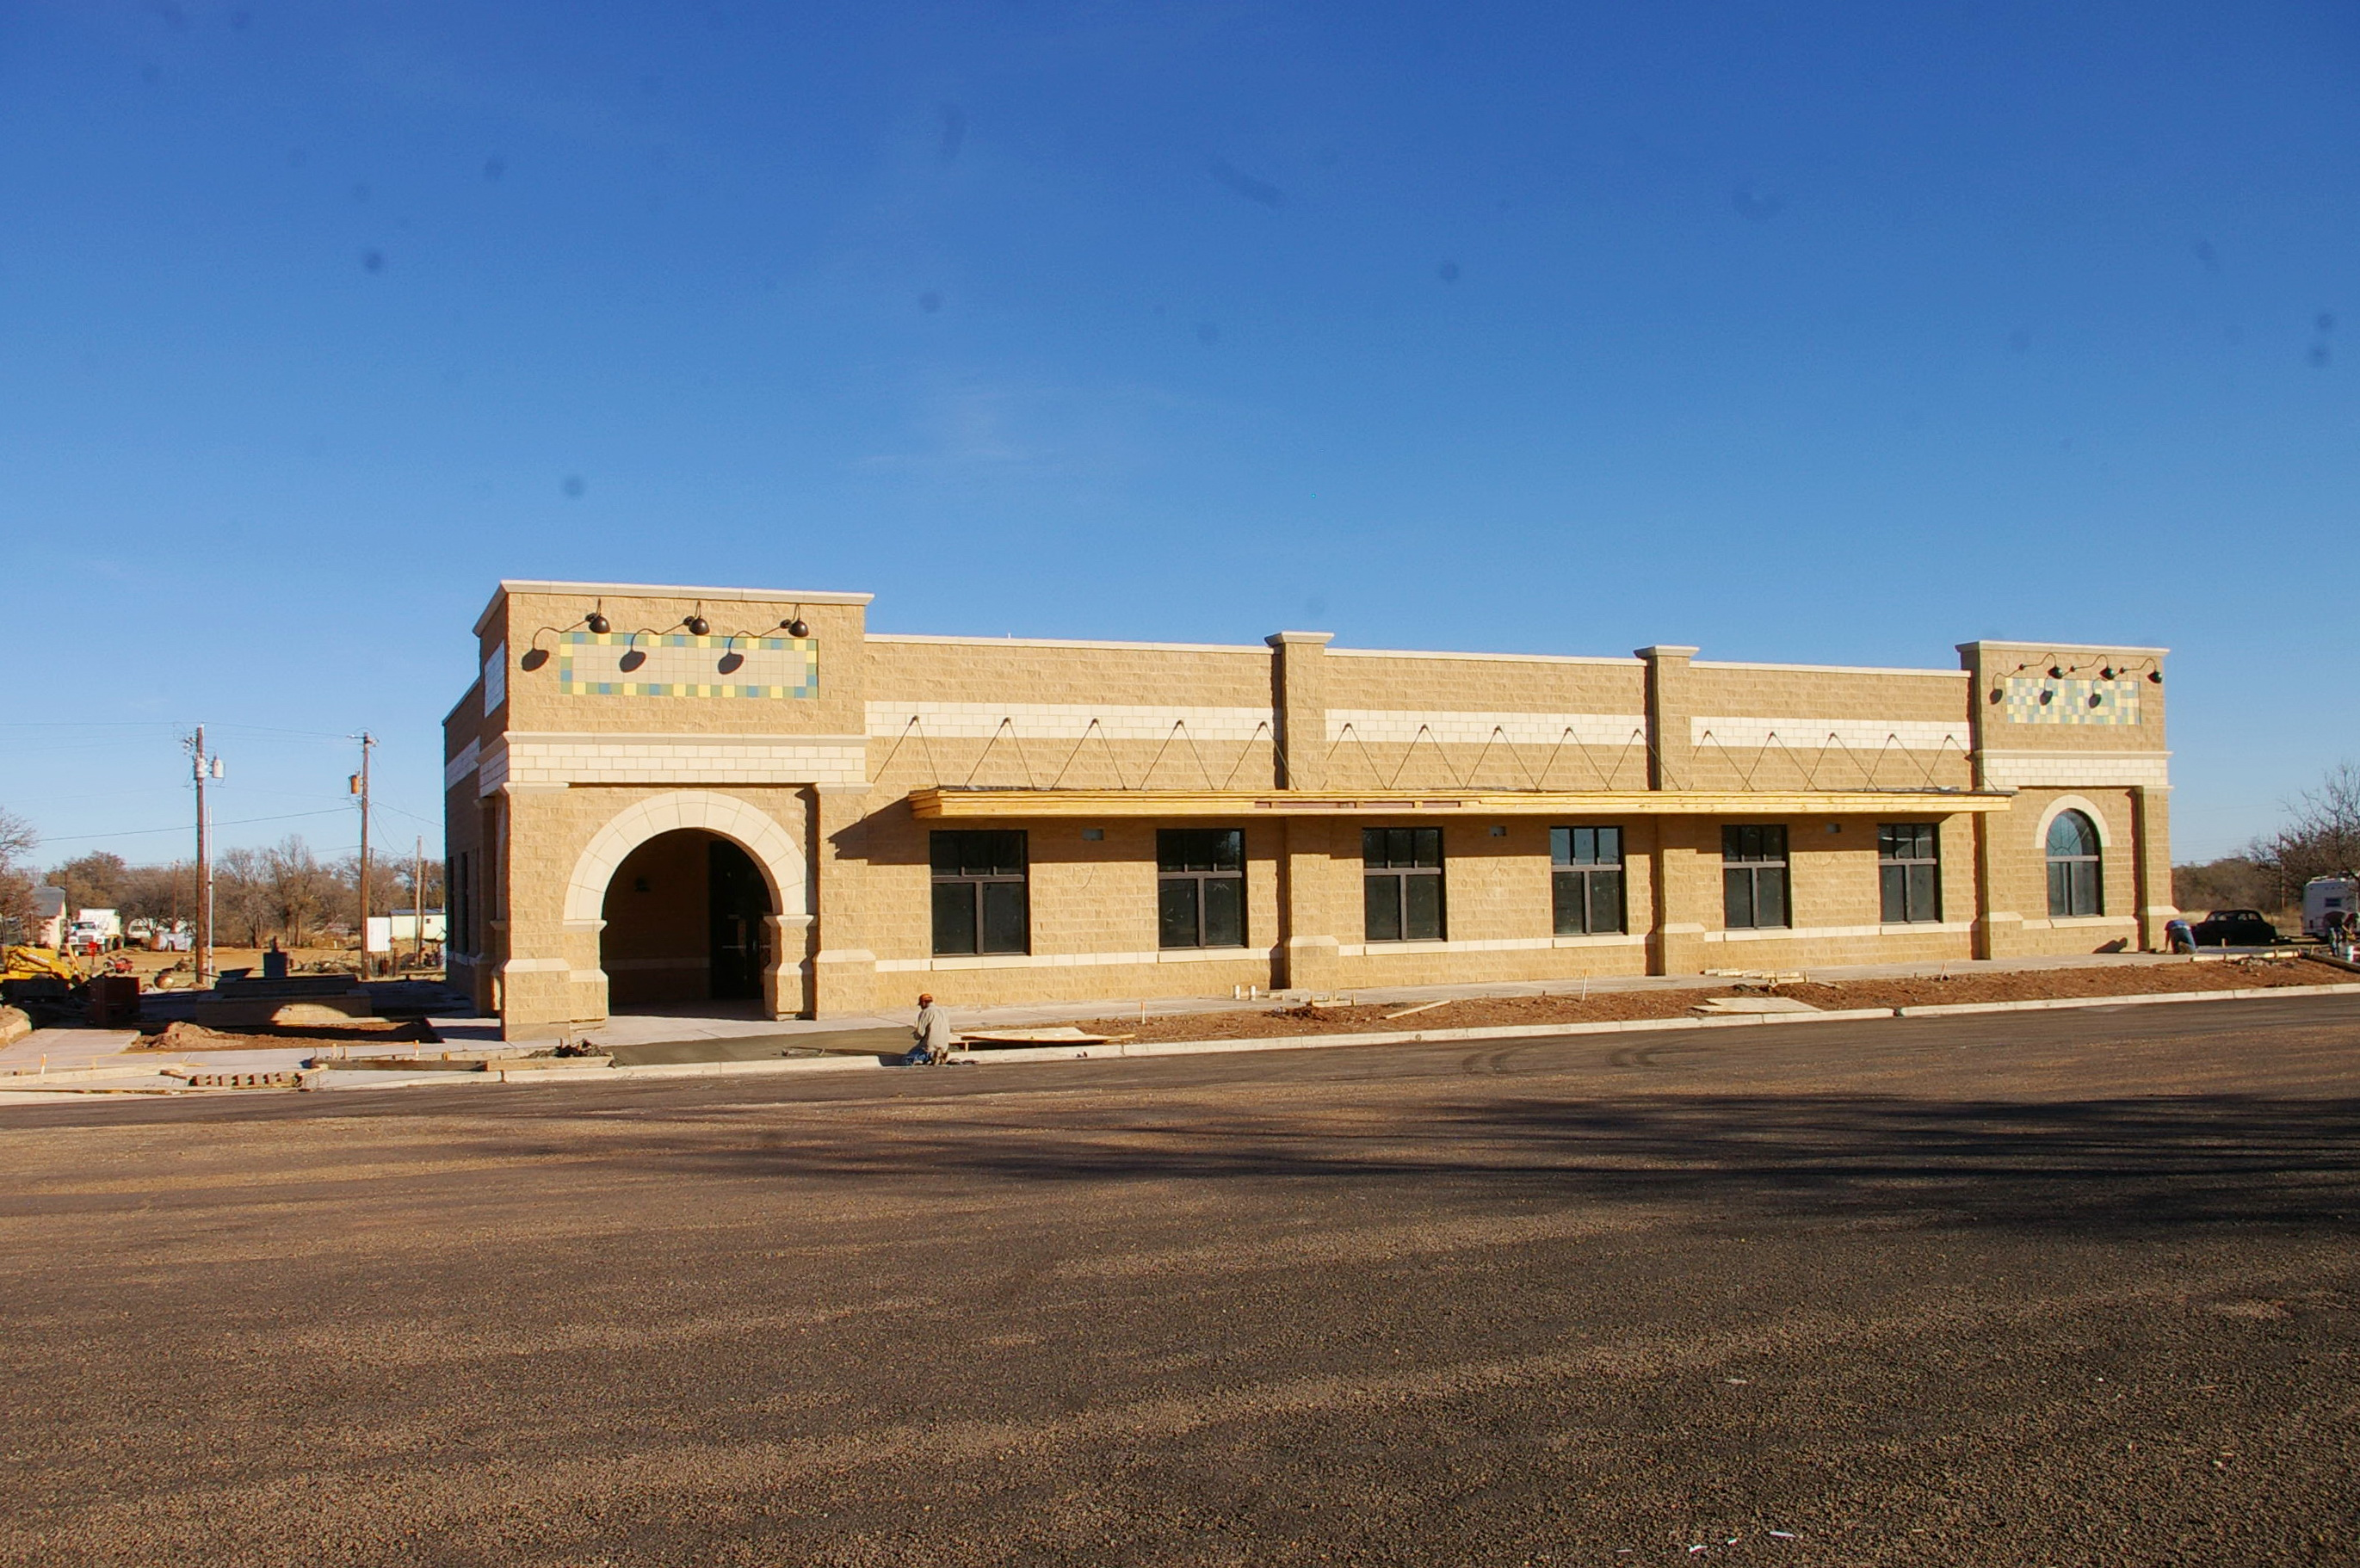 dickens county middle eastern singles June 1 - first friday art trail - visit any one of the art venues open from 6 to 9 and experience some of lubbock's wonderful art spaces start at any one and go from there as you will.